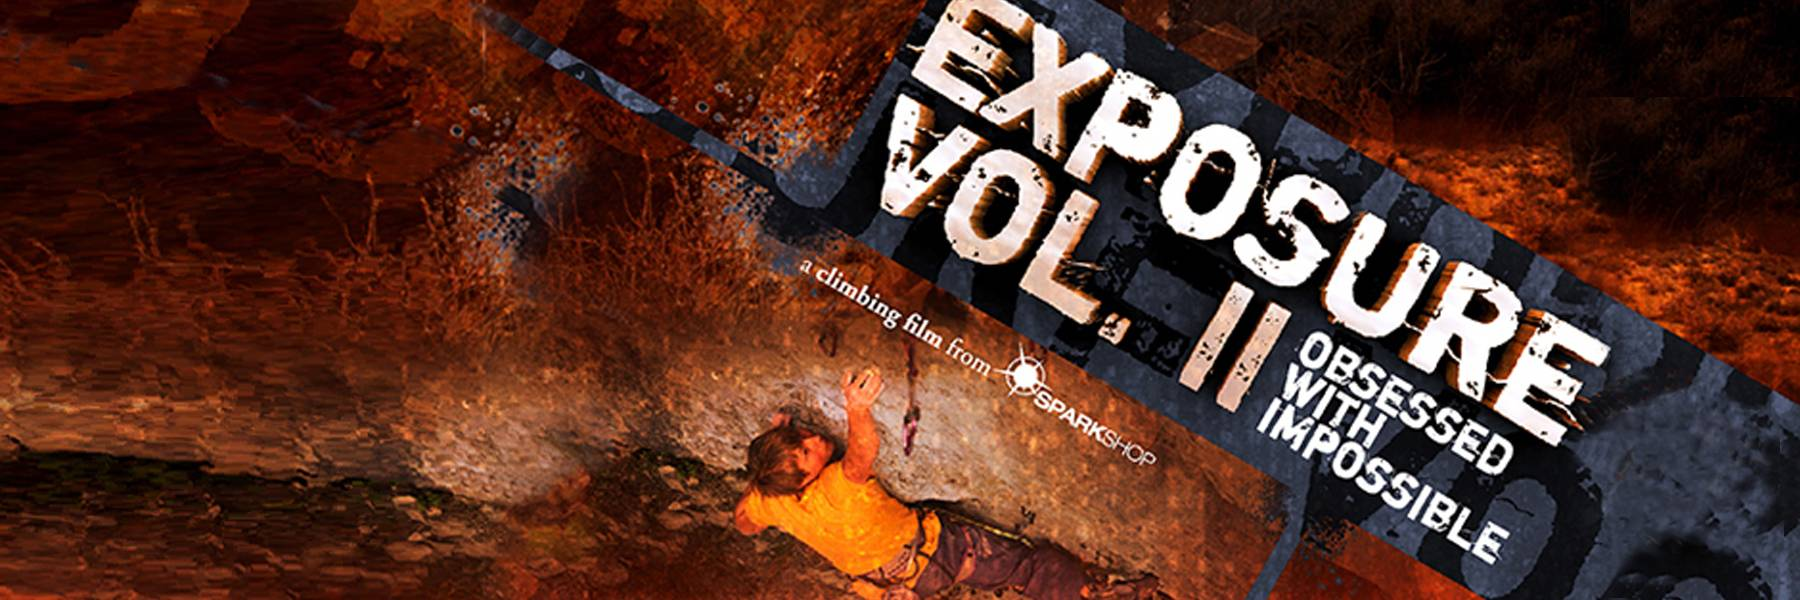 EXPOSURE Vol. 1 AND Vol. 2 AVAILABLE NOW